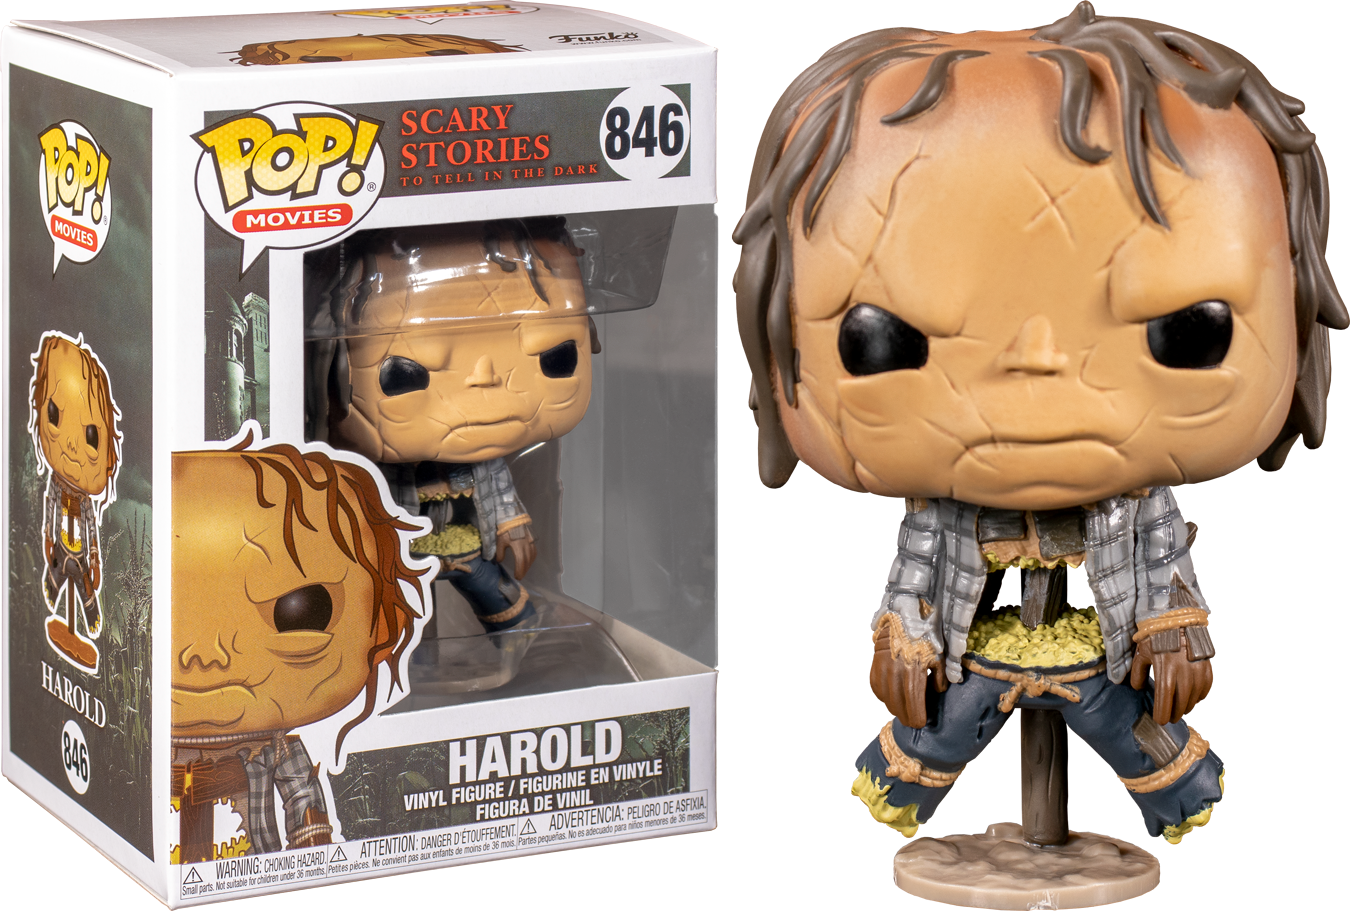 Scary Stories To Tell In The Dark - Harold the Scarecrow Pop! Vinyl Figure